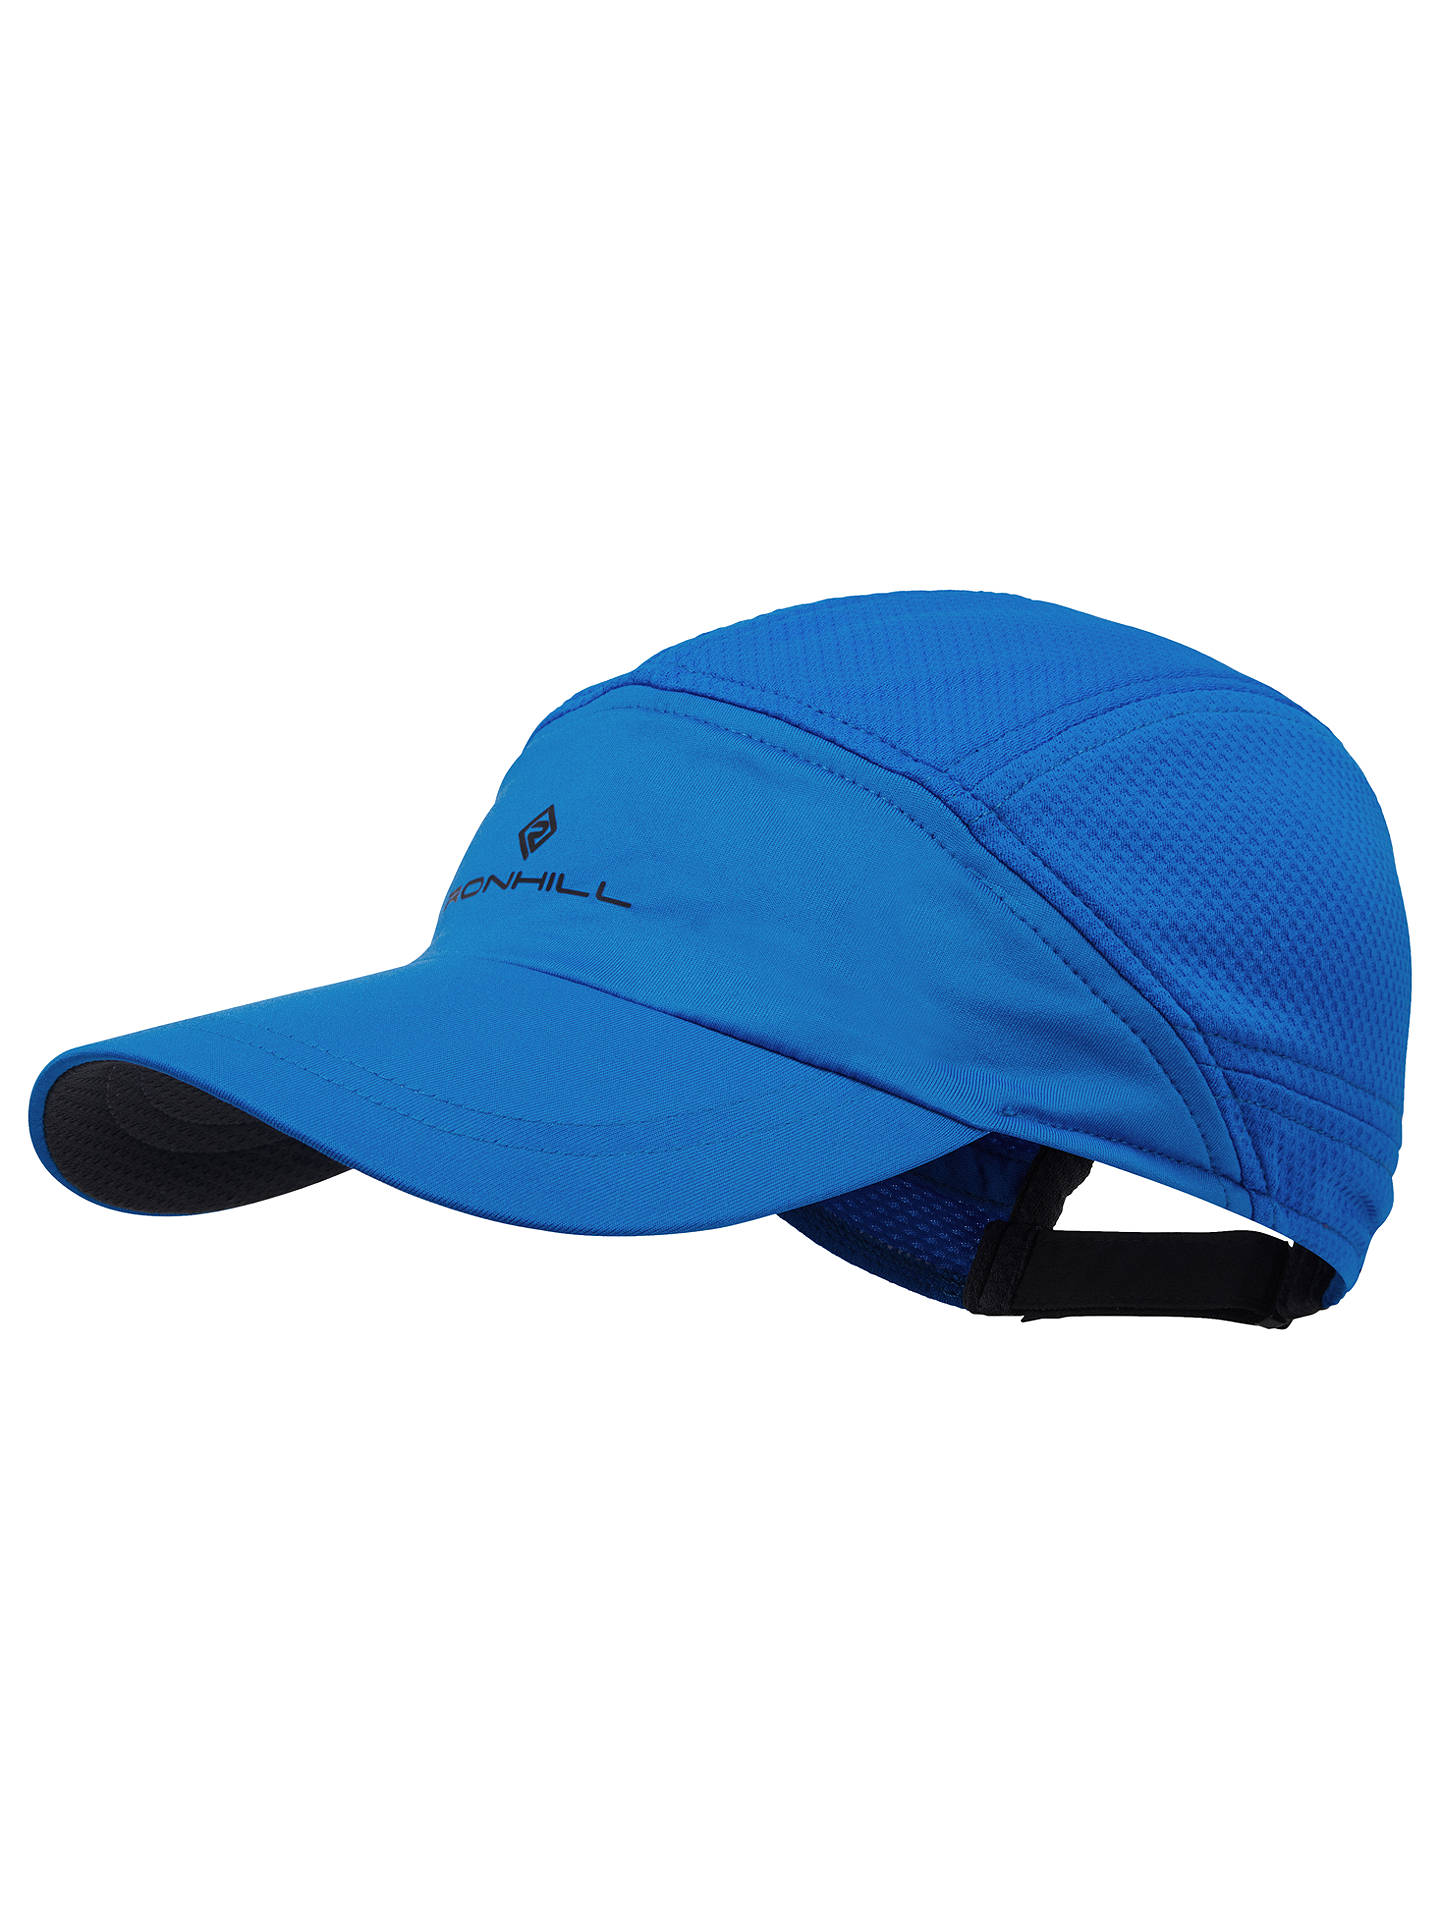 BuyRonhill Air-Lite Cap Hat, Electric Blue, S/M Online at johnlewis.com